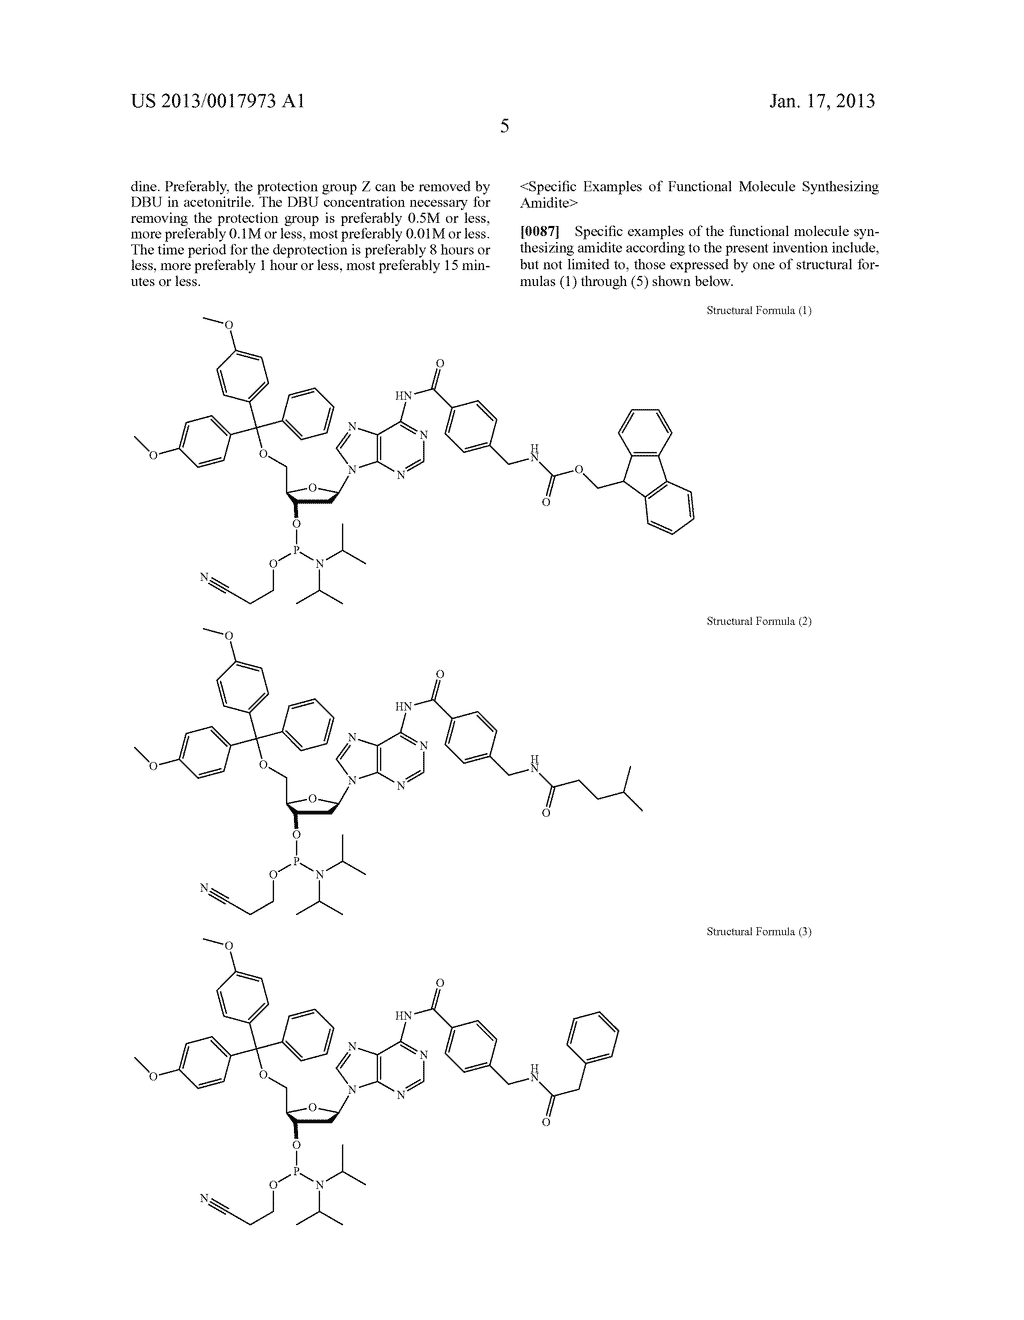 FUNCTIONAL MOLECULE, FUNCTIONAL MOLECULE SYNTHESIZING AMIDITE AND TARGET     SUBSTANCE ANALYSIS METHOD - diagram, schematic, and image 55